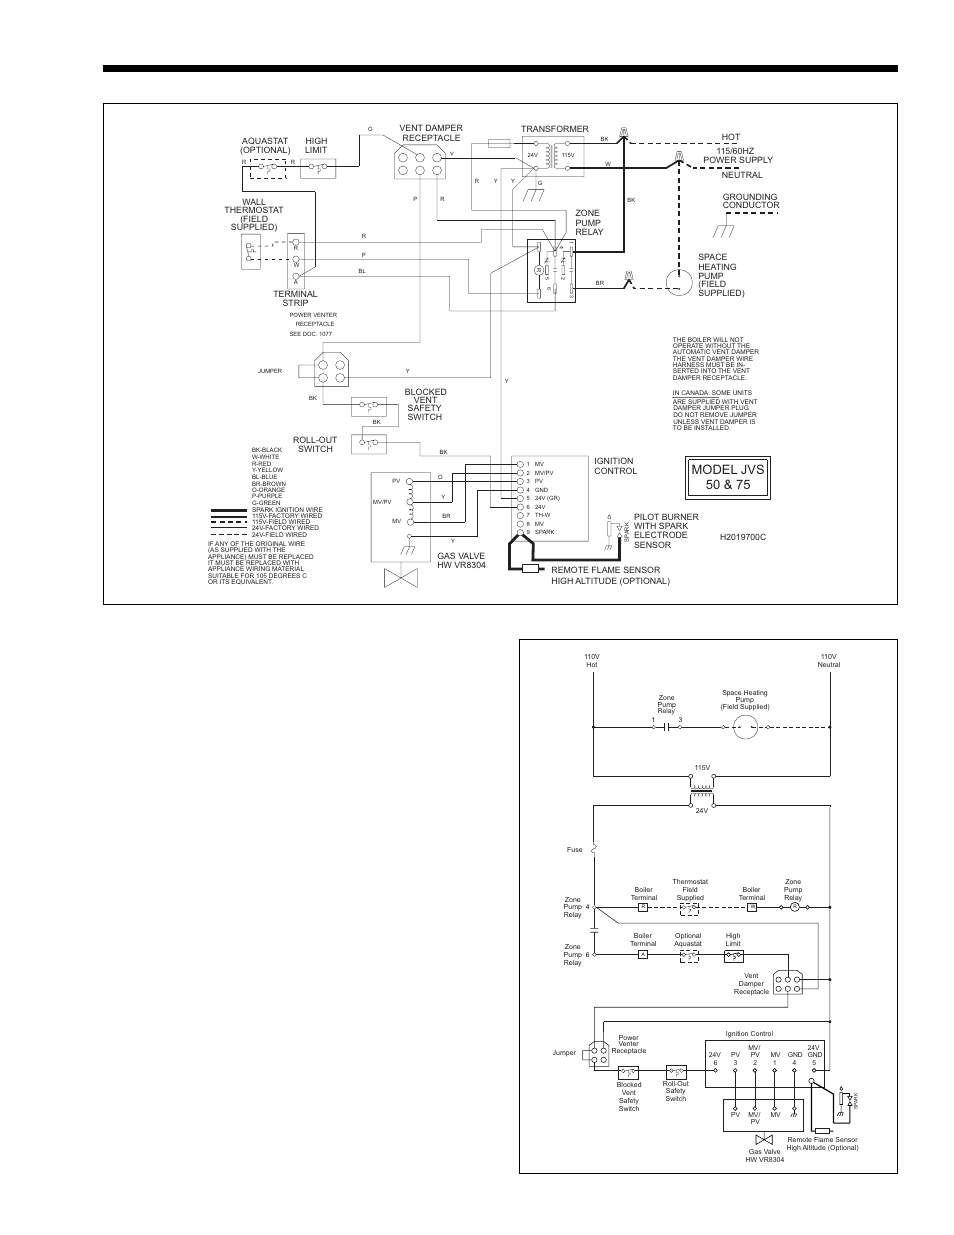 laars mini therm ii jvt sizes 50 225 install and operating manual page17?resize\\\\\=665%2C861 diagrams 2449985 lmtv wiring harness accessory hook up ( 79 lmtv wiring diagram at bayanpartner.co